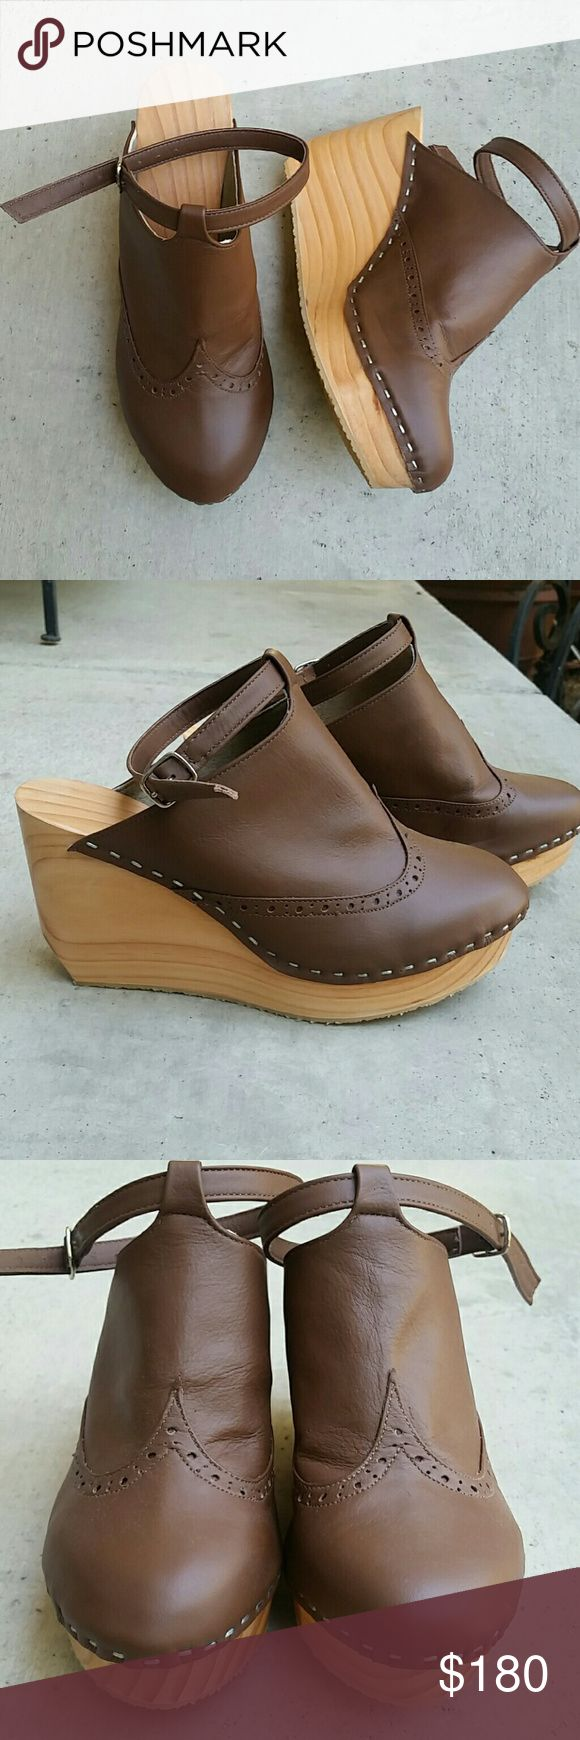 Wood wedge platform clog leather NEW! Closed toe Boutique